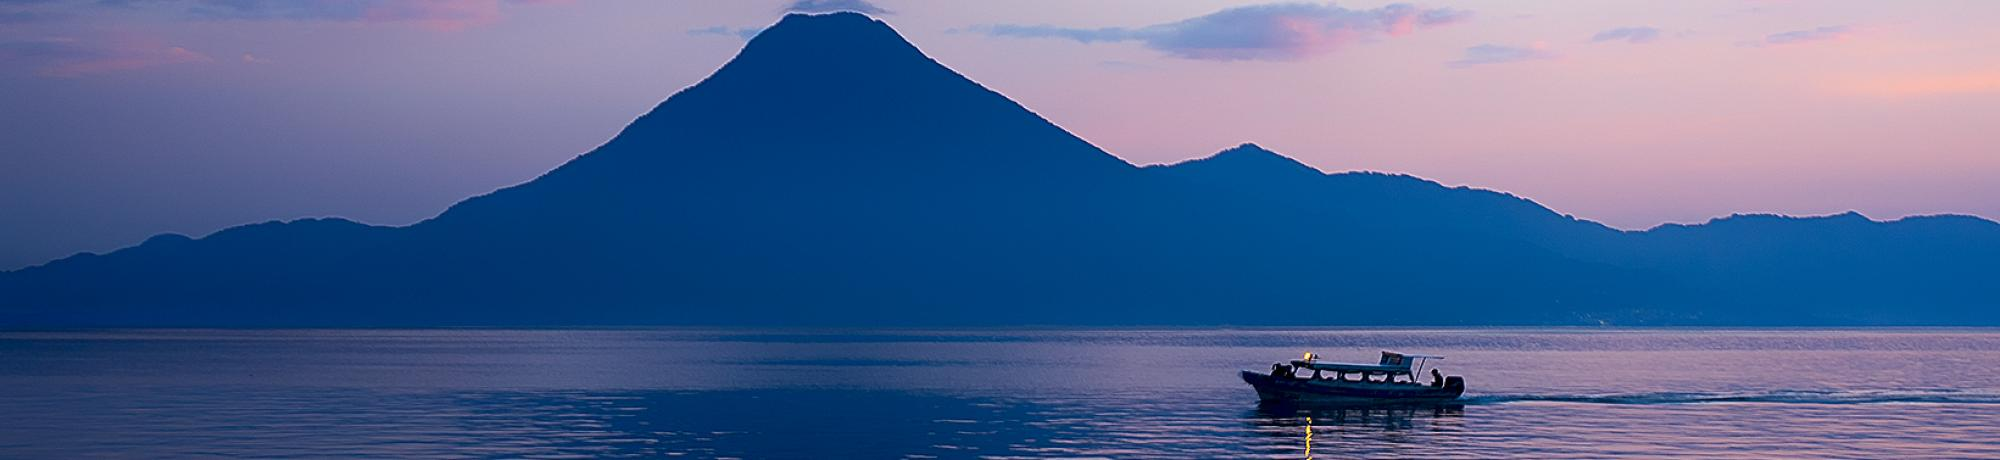 UC Davis Study Abroad, Summer Abroad Guatemala, Ecological and Social Issues at Lake Atitlan, Guatemala Program, Header Image, Overview Page